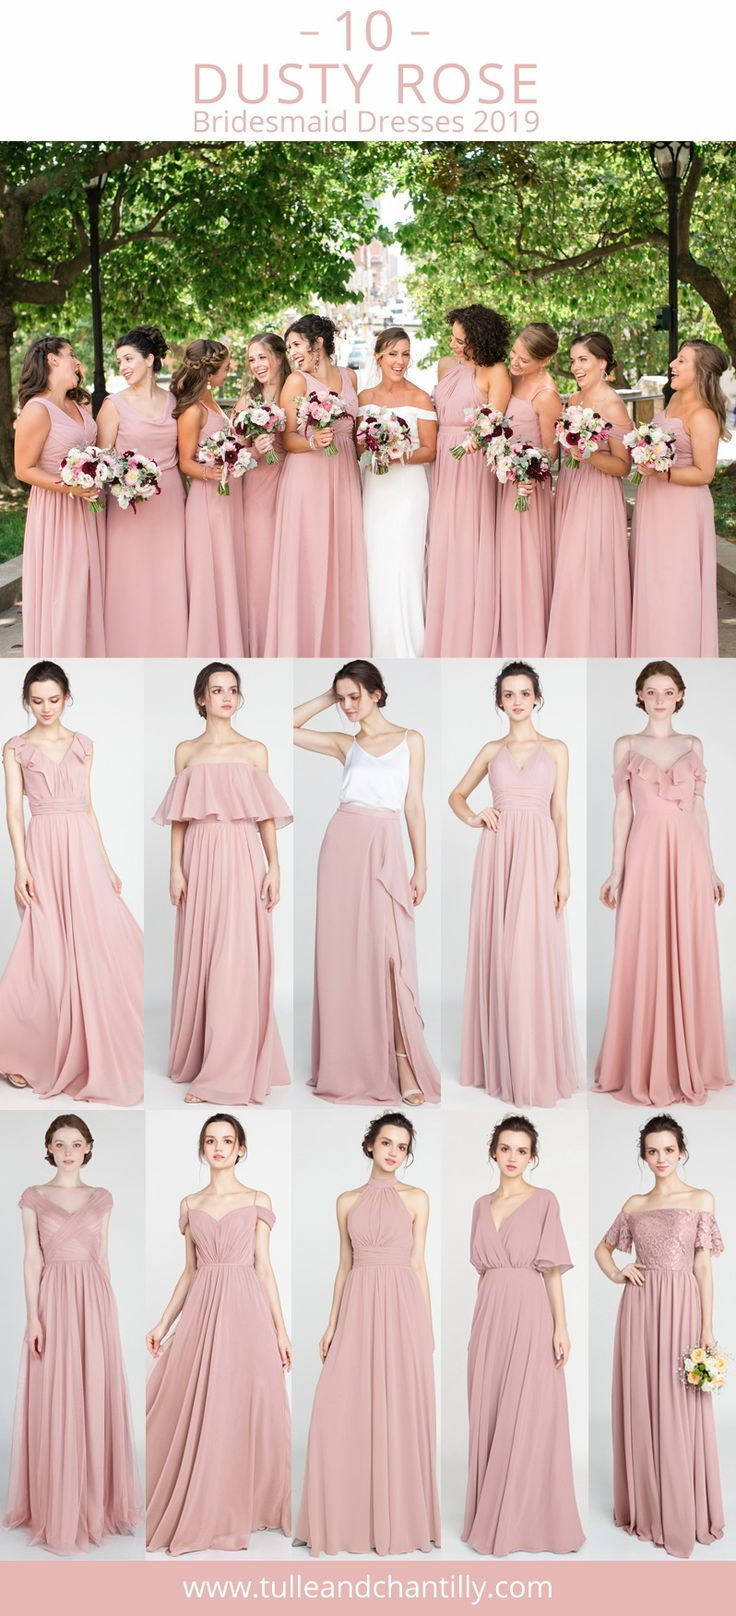 Top 10 Dusty Rose Bridesmaid Dresses 2019 Wedding Weddinginspiration Bridesma Wedd Kleid Altrosa Brautjungfernkleider Lang